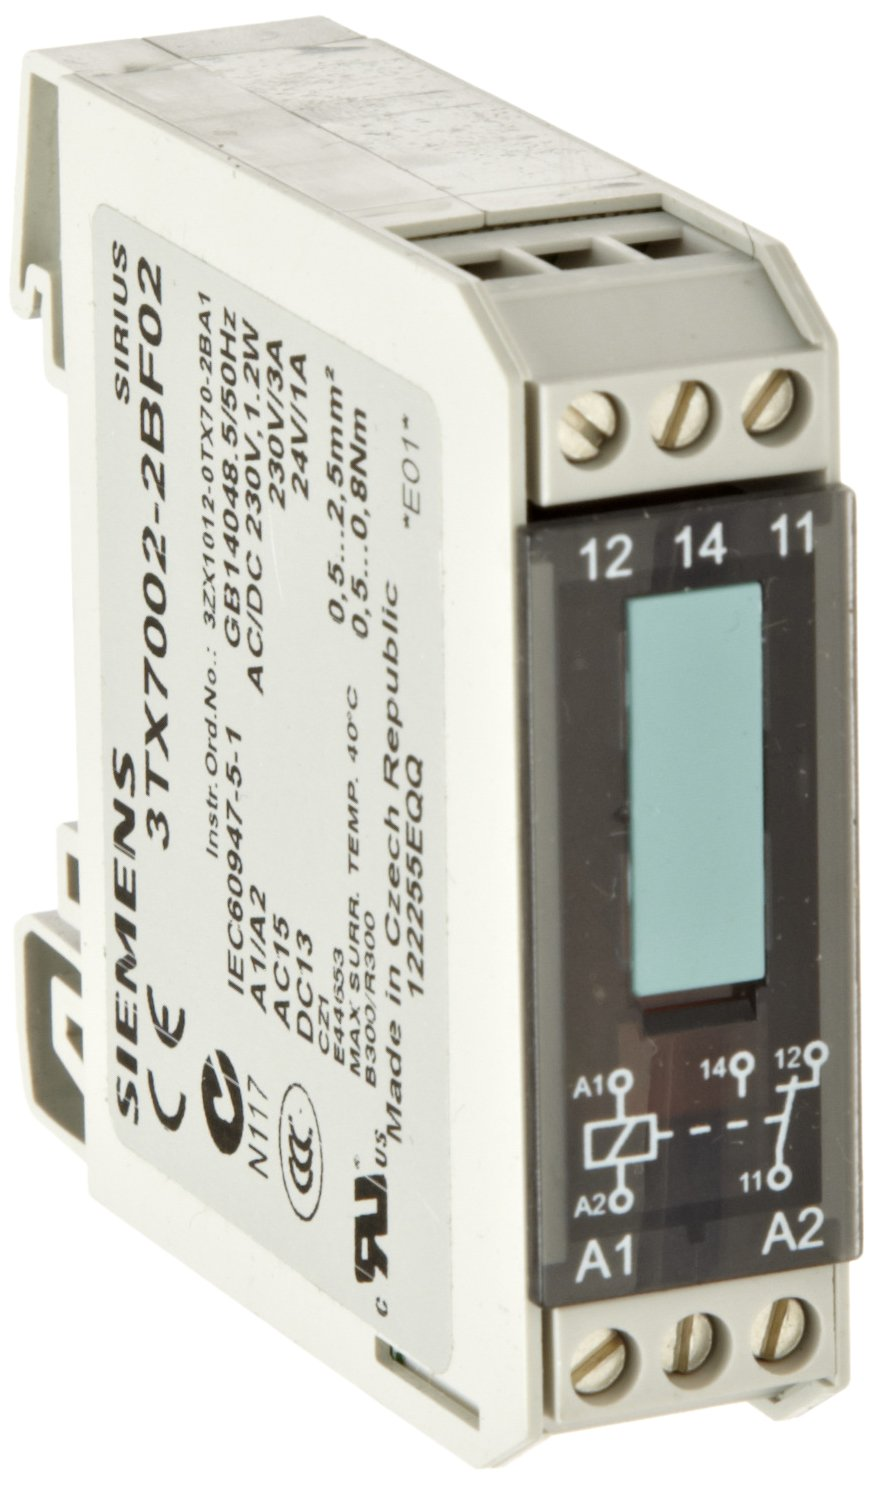 Interface Relay, Narrow Design, Screw Terminal, Input Interface With Relay Output, Hard Gold Plated Contacts, 1 CO Contact, 17.5mm Width, 230VAC/DC Control Supply Voltage